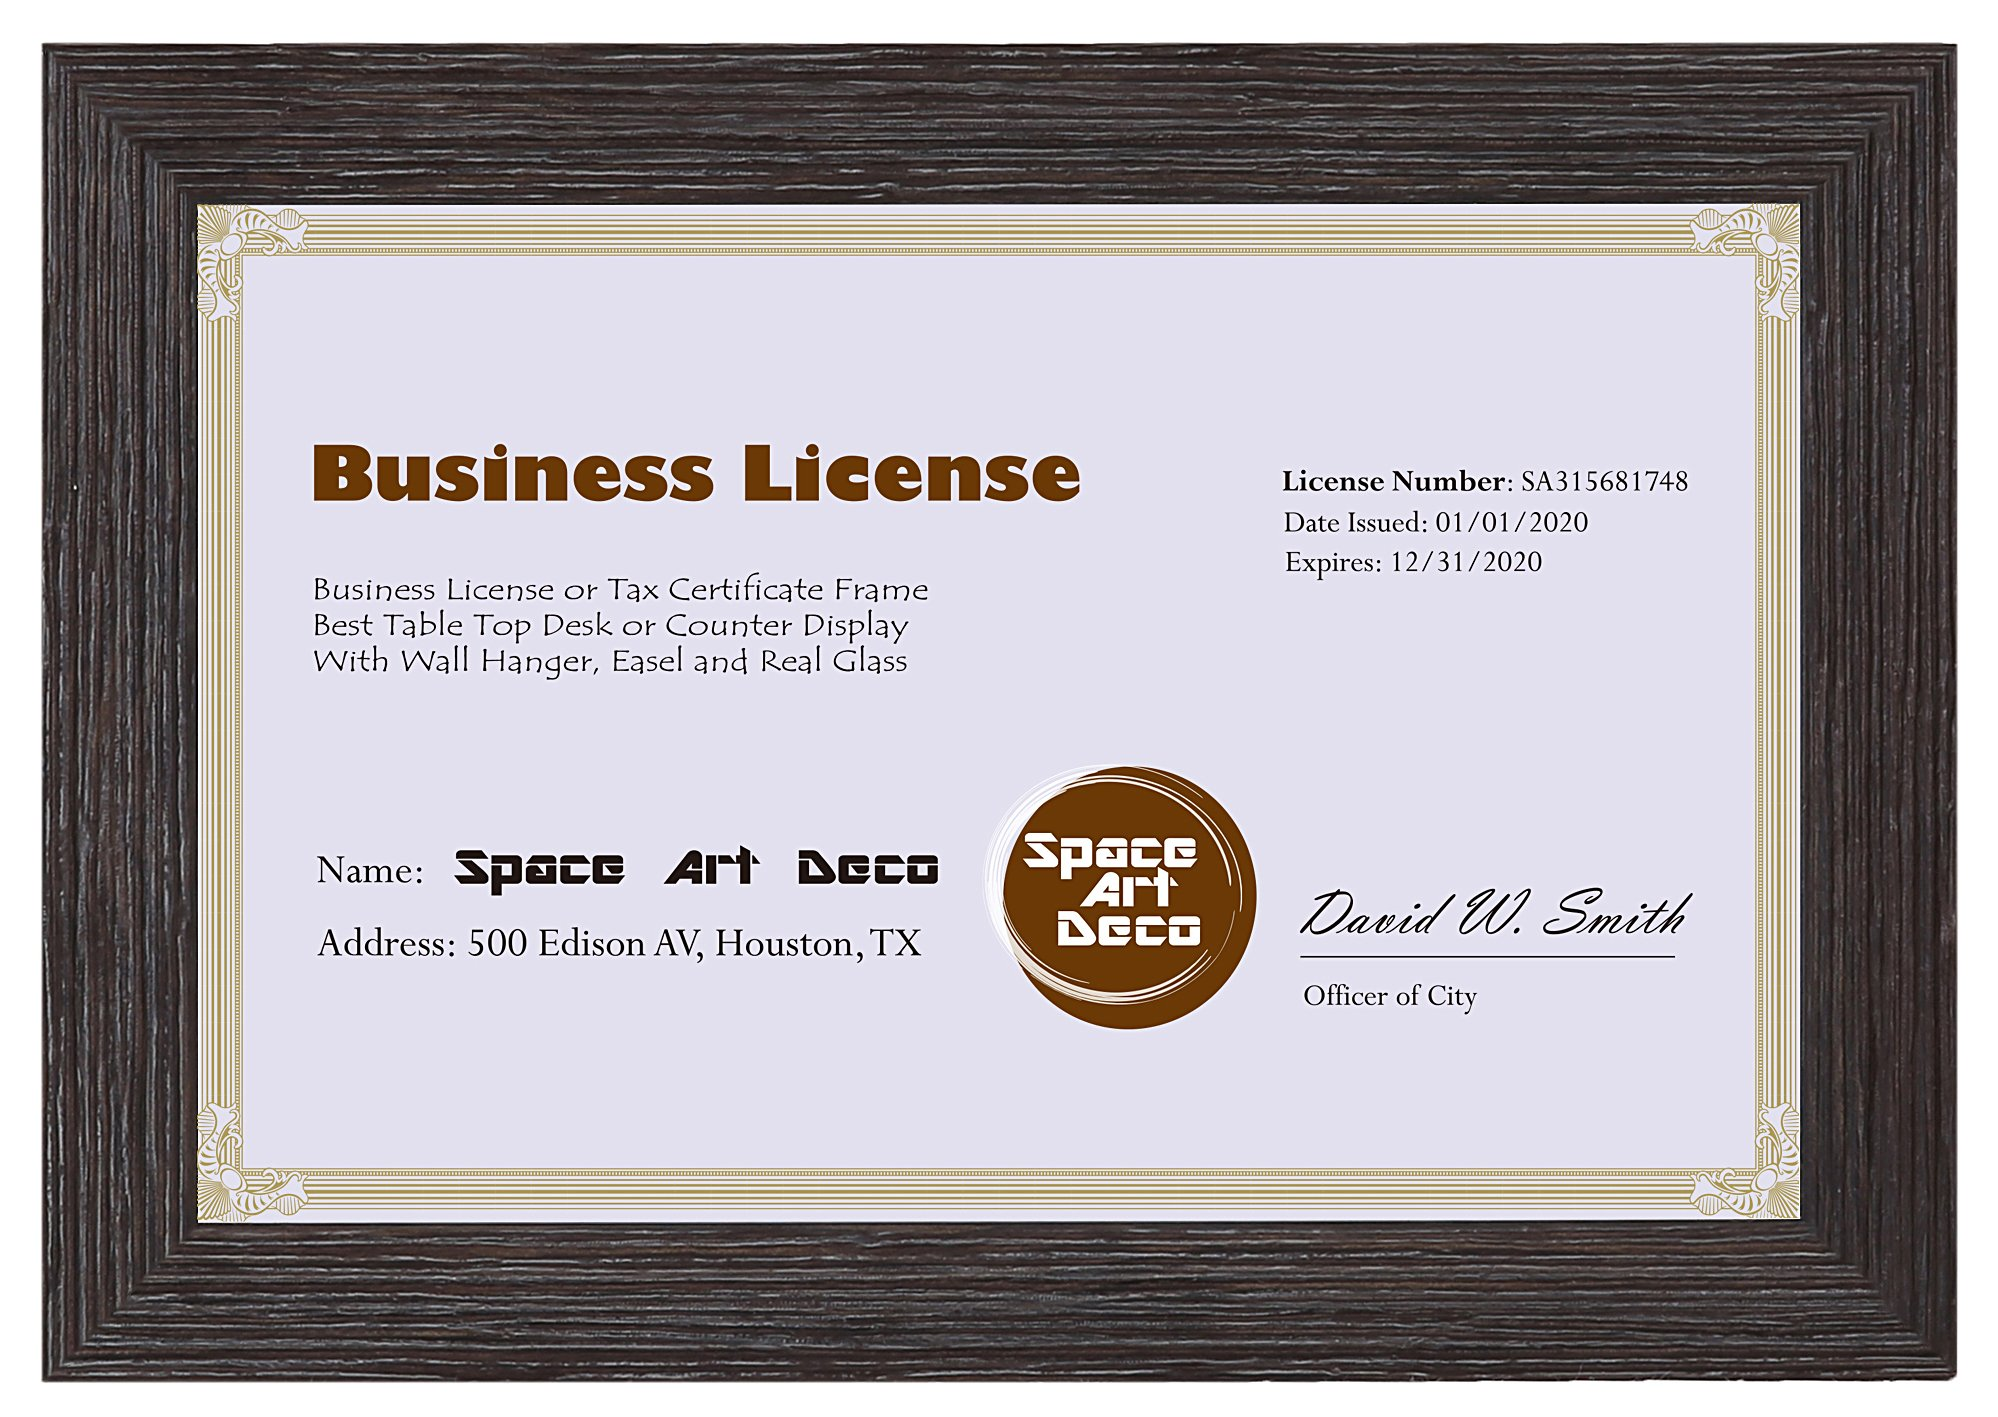 Space Art Deco 5.5x8.5 Dark Brown Textured Frame - Easel Stand - D-Ring Hangers - for Business License and Certificates - Desk/Table Top Display - Glass (Dark Brown) by Space Art Deco